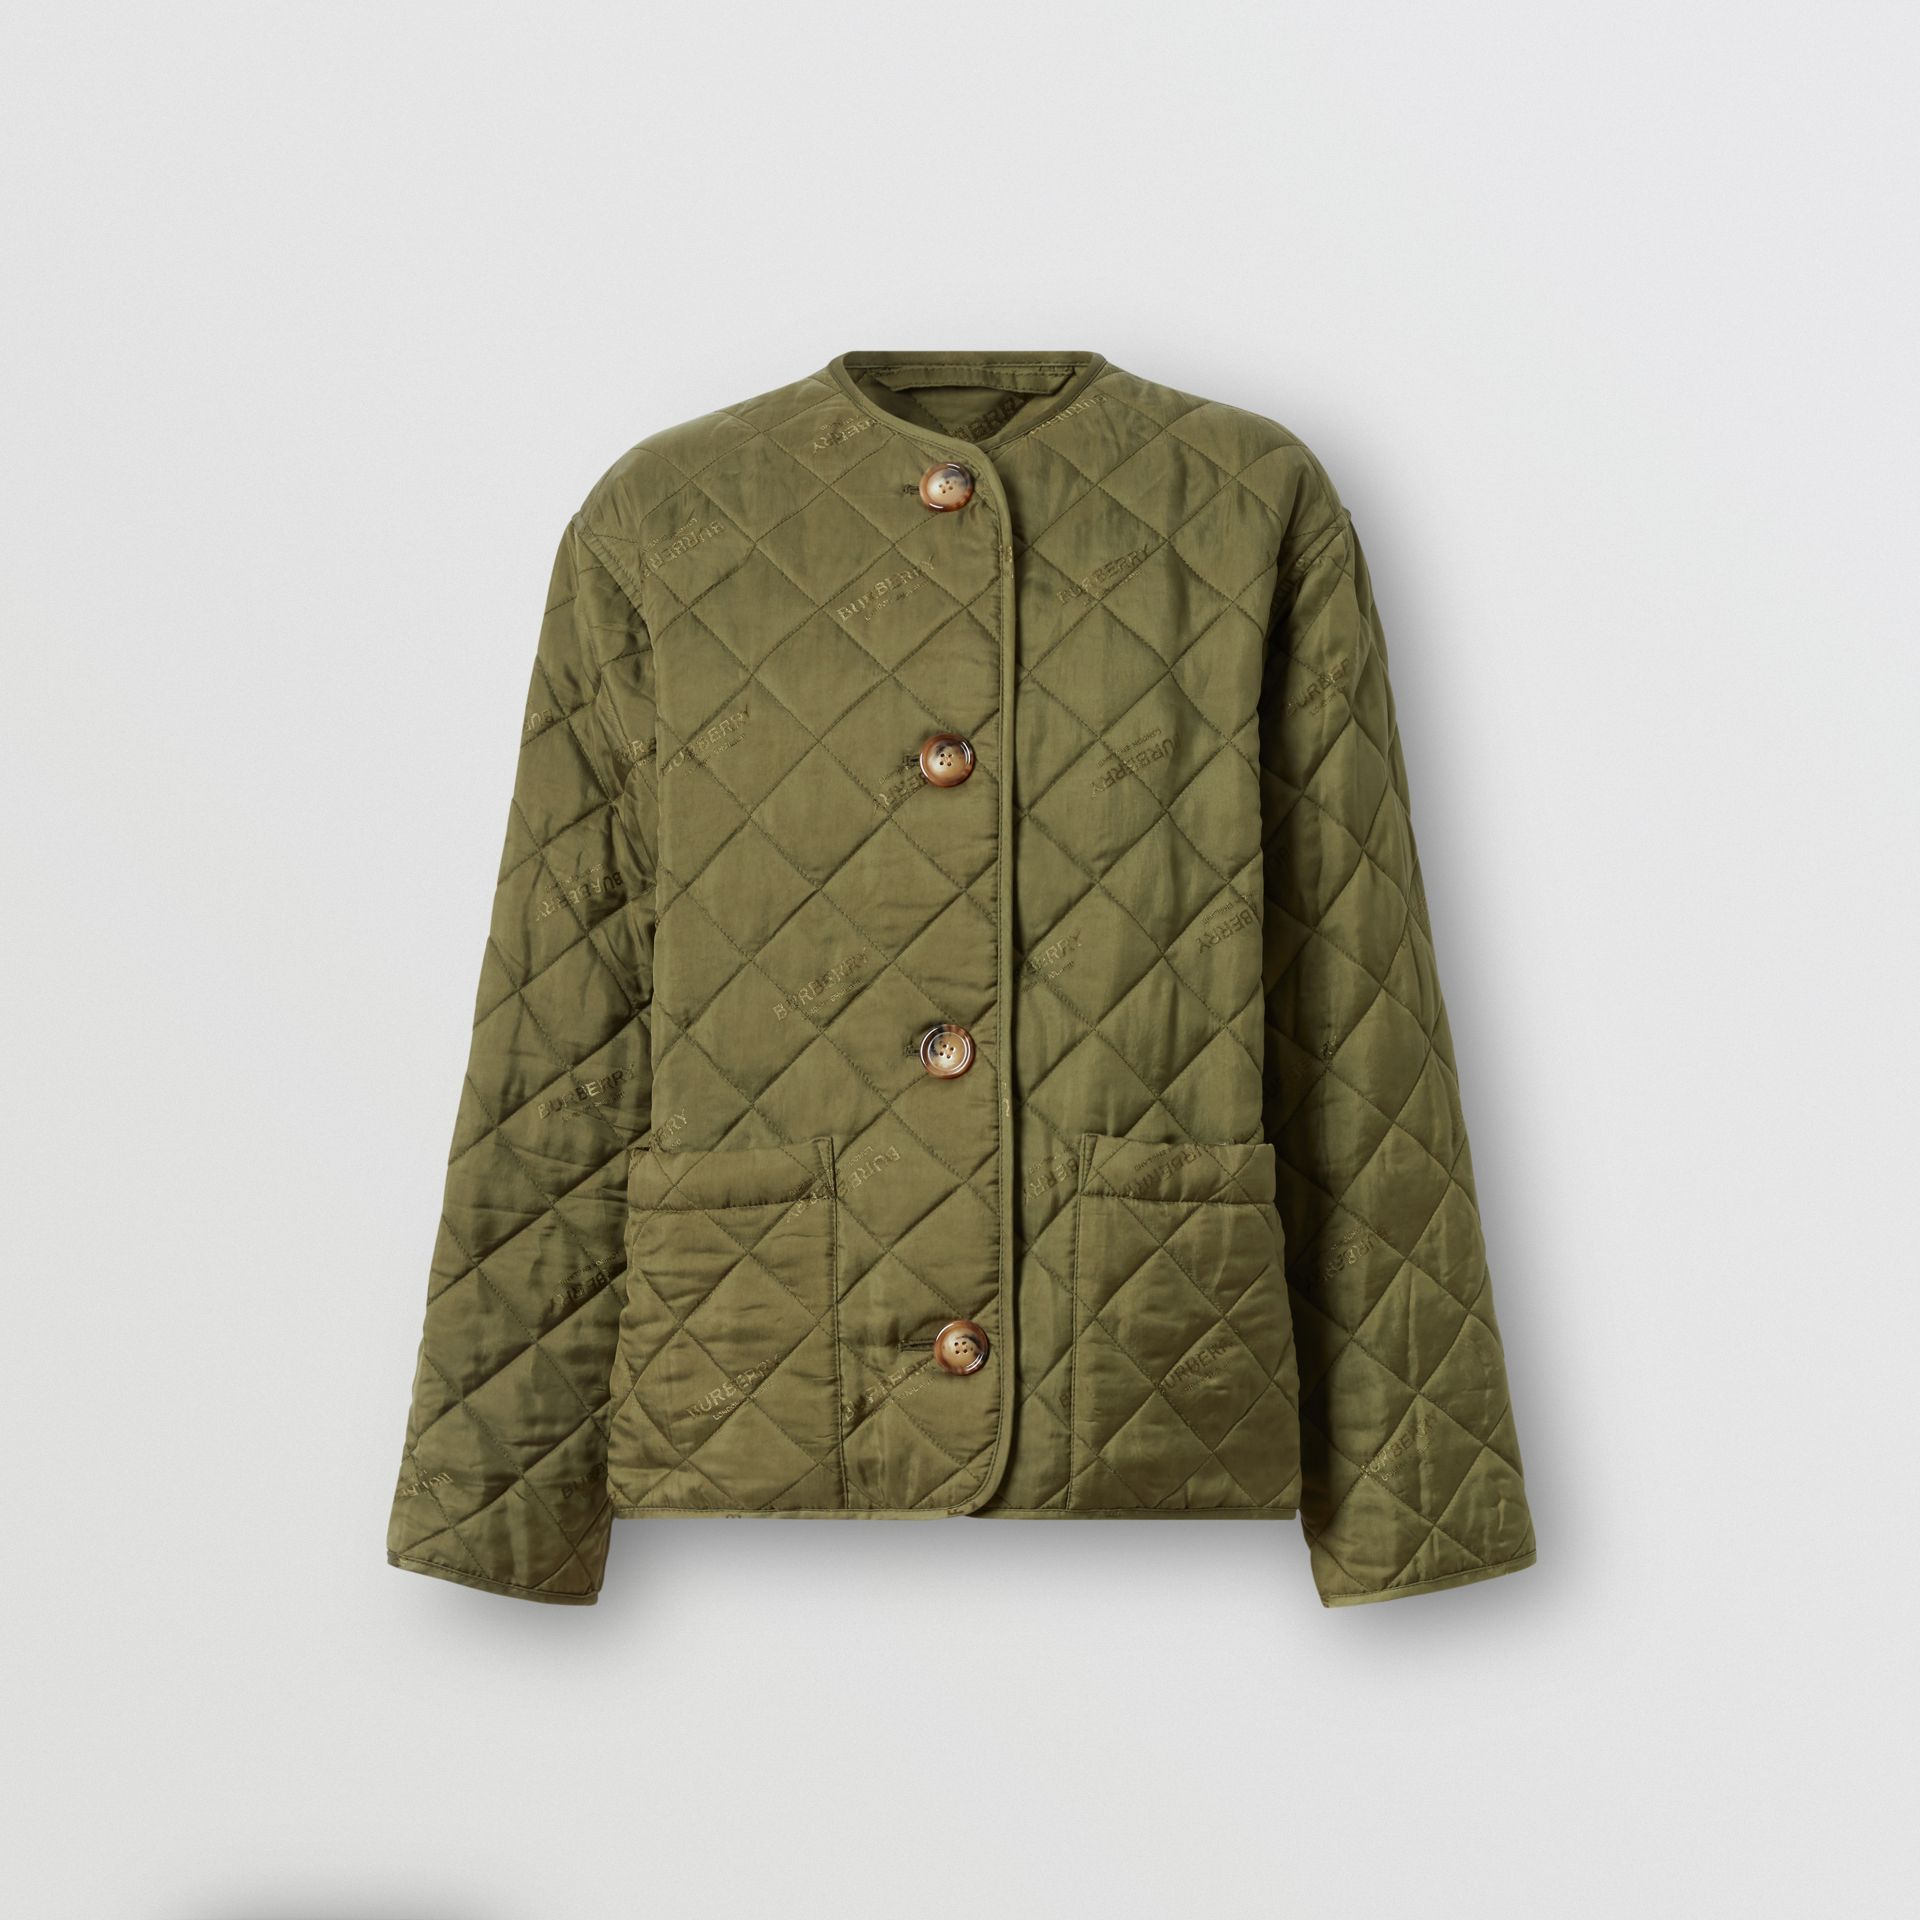 Logo Jacquard Diamond Quilted Jacket in Olive - Women | Burberry Canada - gallery image 3